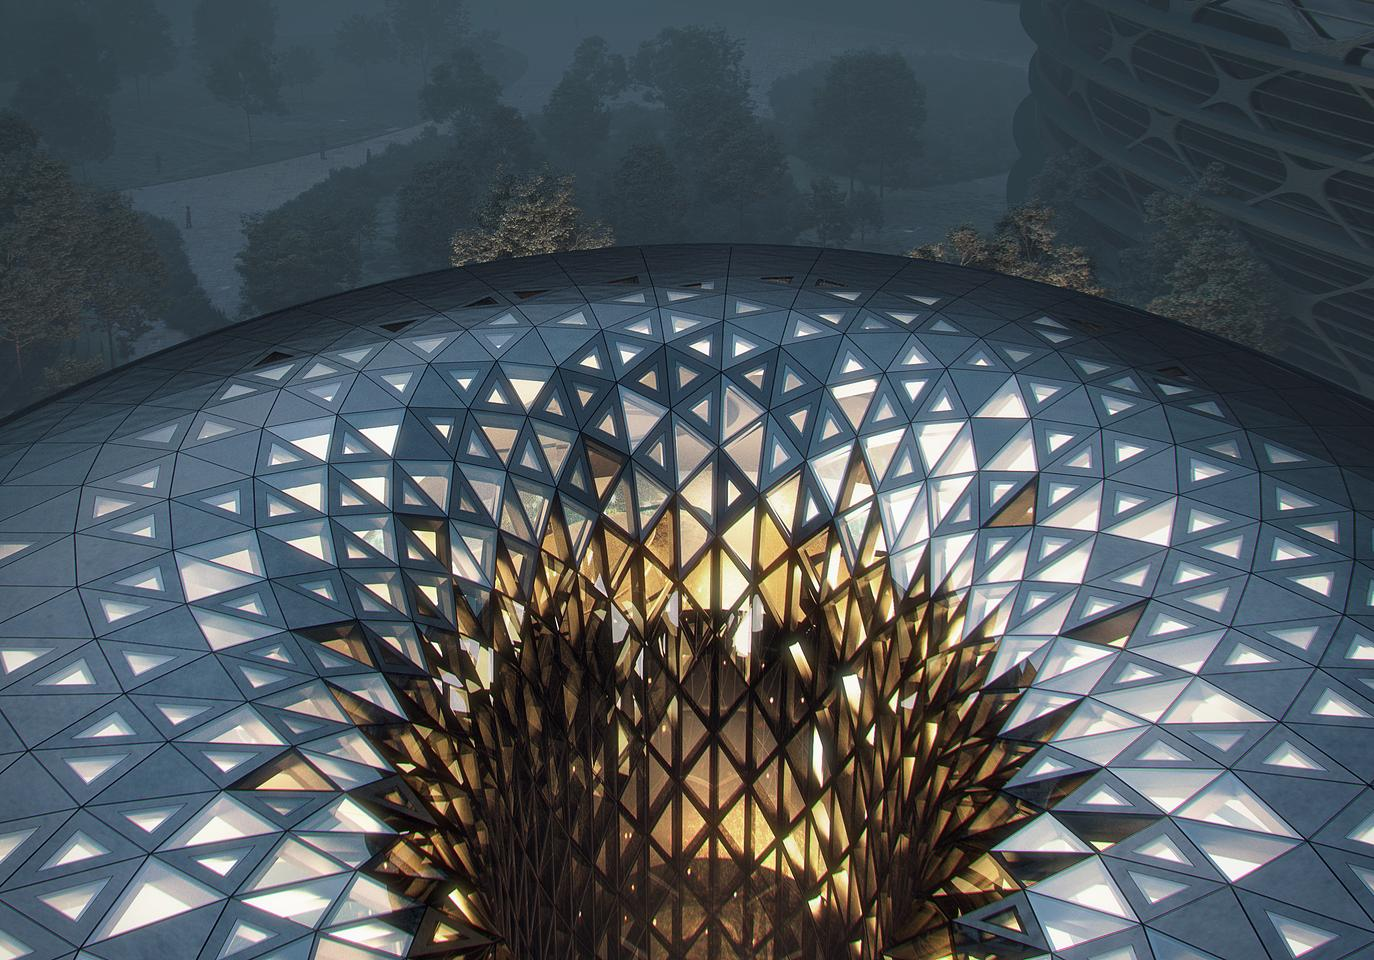 The Unicorn Island masterplan's exhibition and conference center is topped by an impressive glass roof